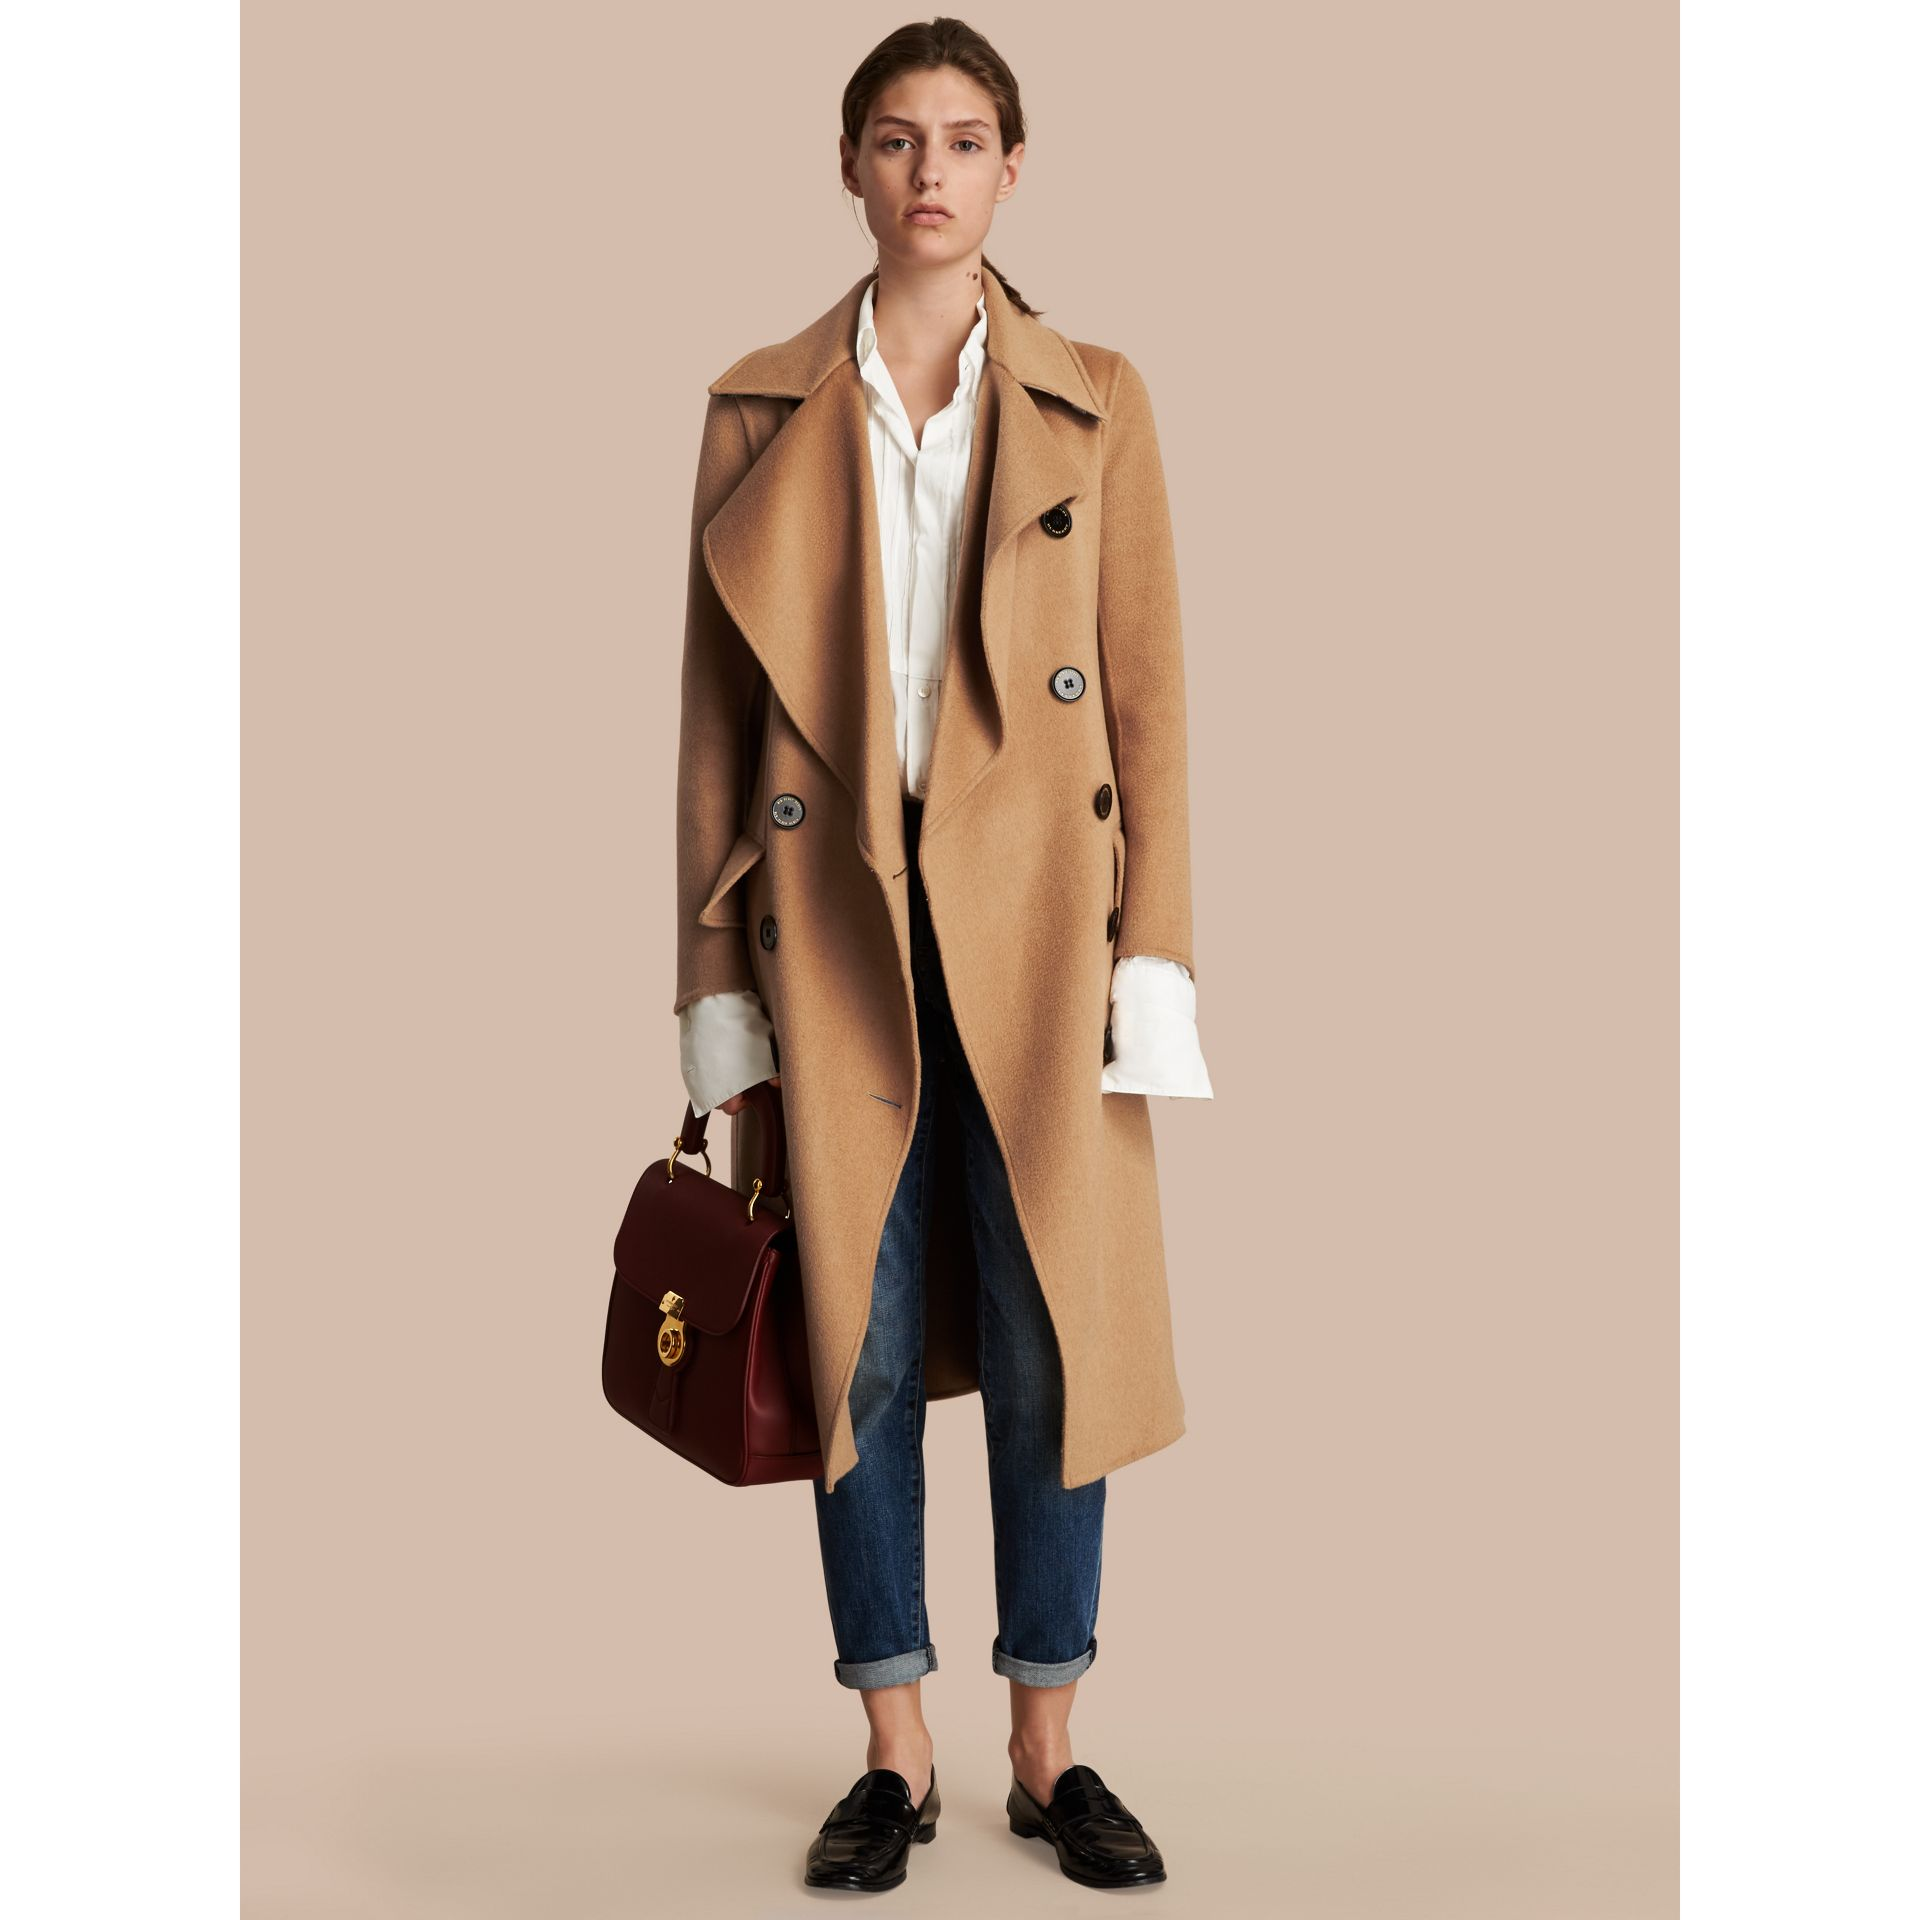 Draped Front Camel Hair and Wool Tailored Coat - Women | Burberry - gallery image 1